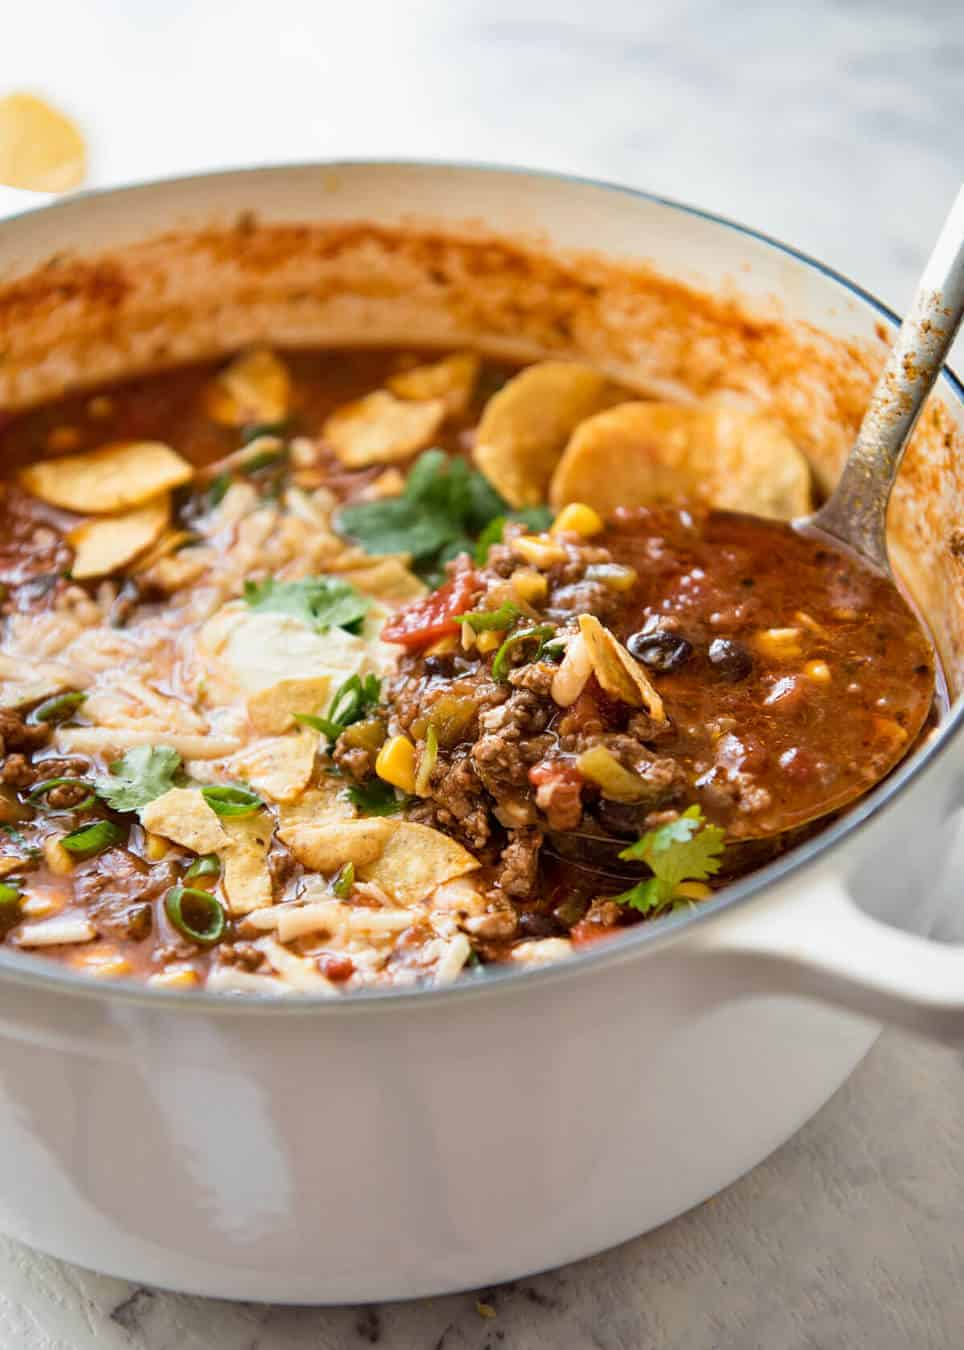 Easy Taco Soup - Made with beef, beans and corn, and either a homemade or store bought taco seasoning. Absolute crowd pleaser, thick and warms the soul. Don't skip the toppings!! www.recipetineats.com